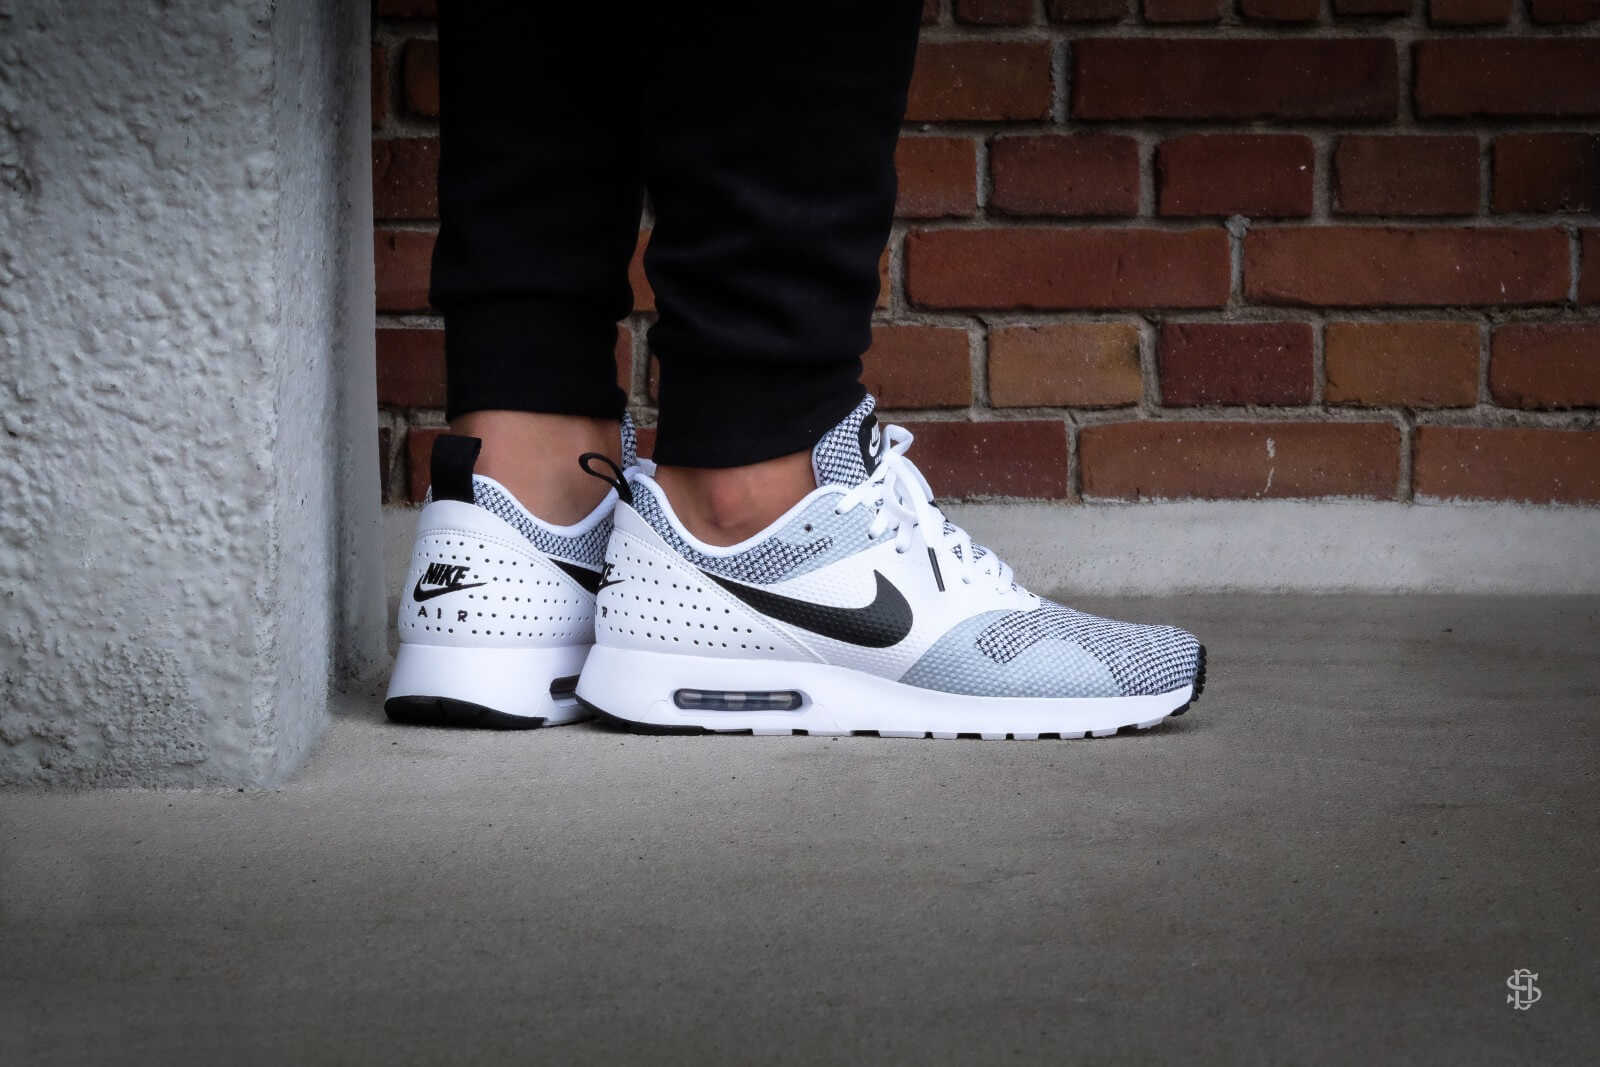 sale retailer 85ec0 12e60 usa nike air max tavas prm white black pure platinum 898016 38616 081b4